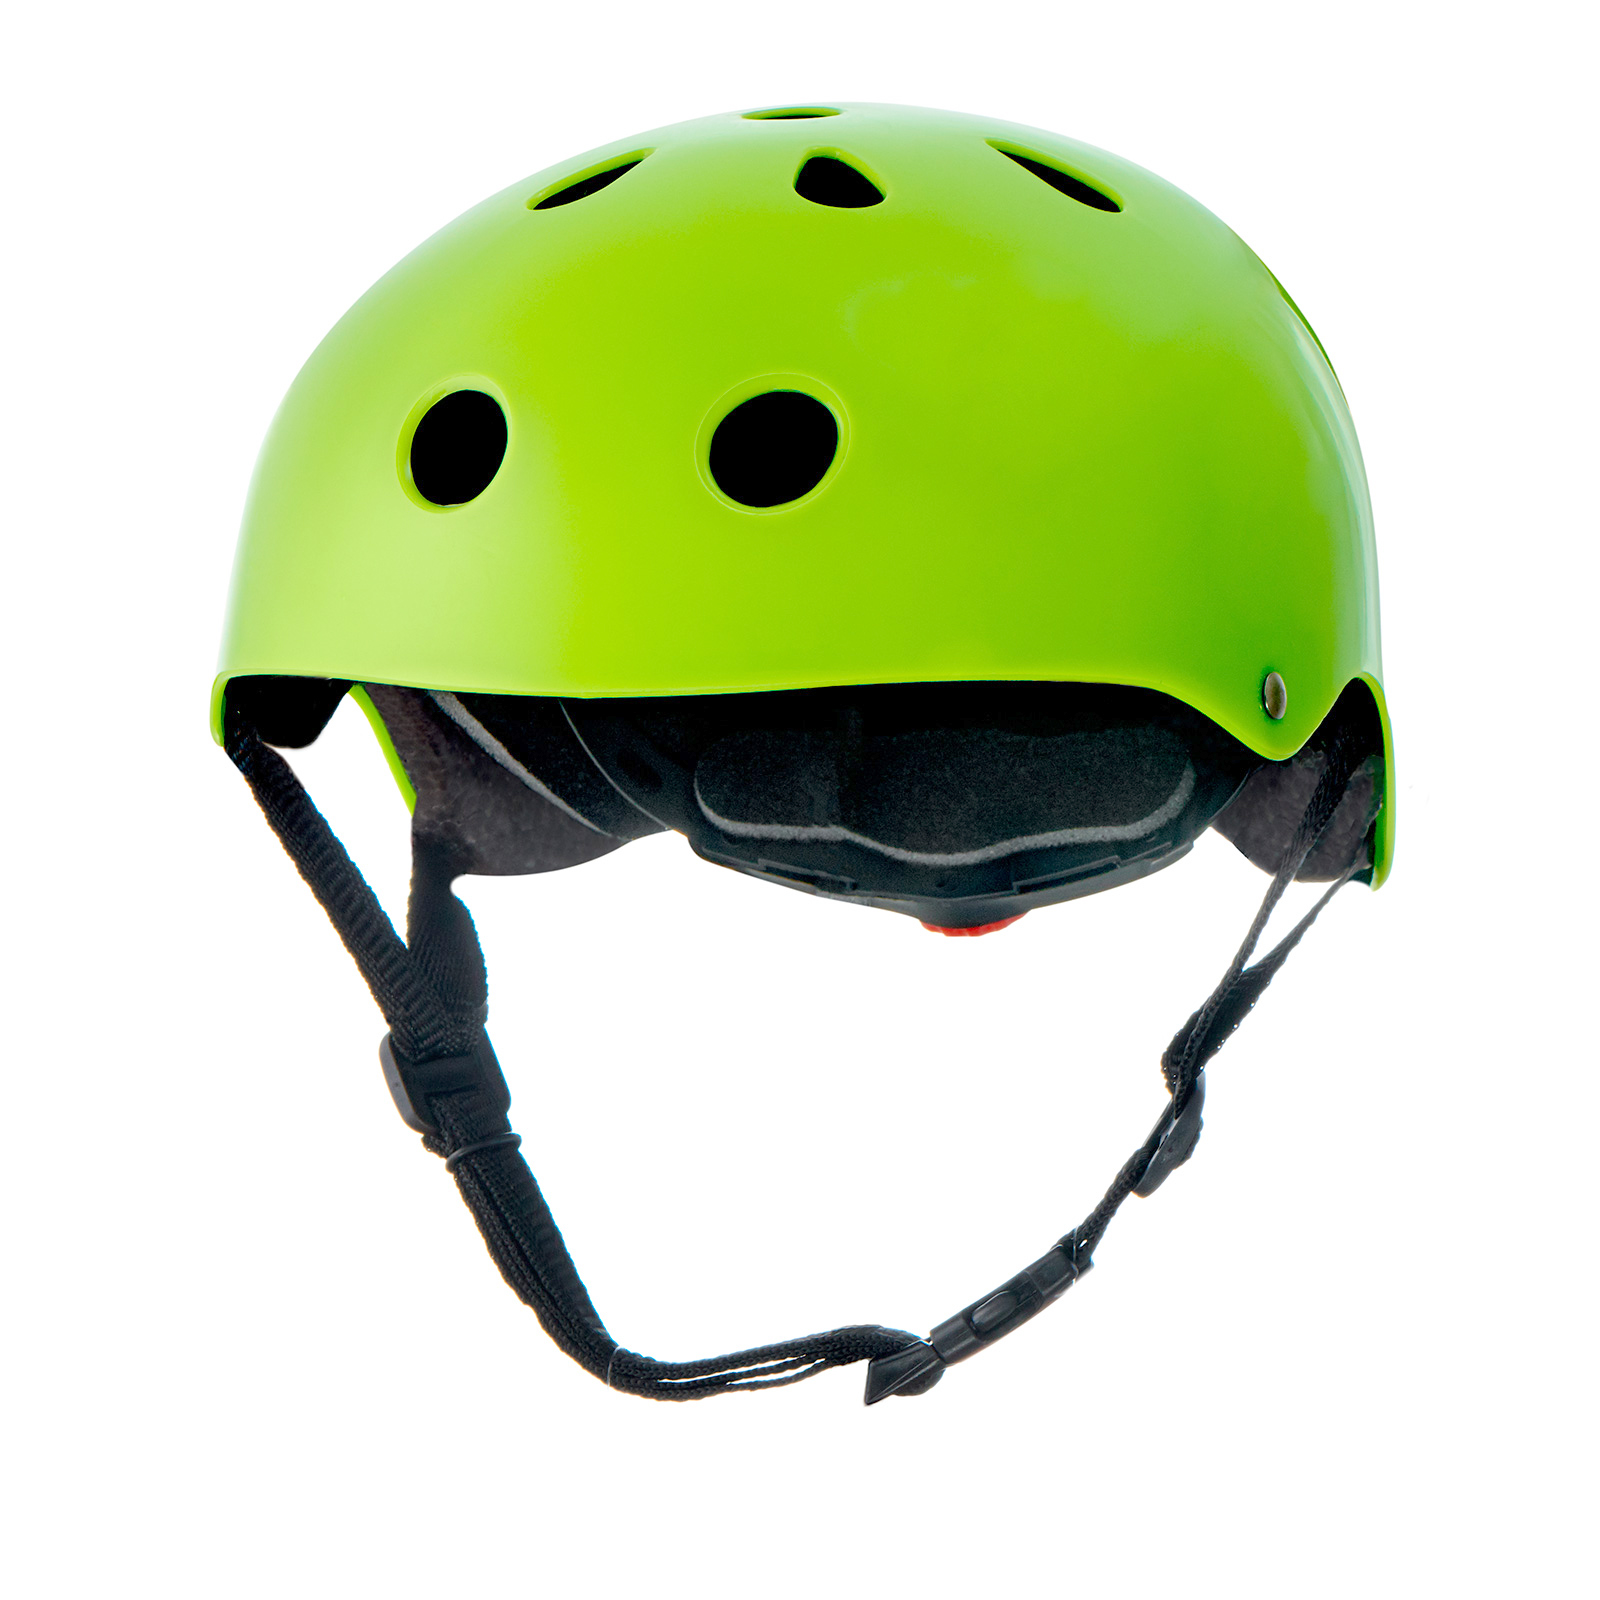 KINDERKRAFT Helma Safety – Green